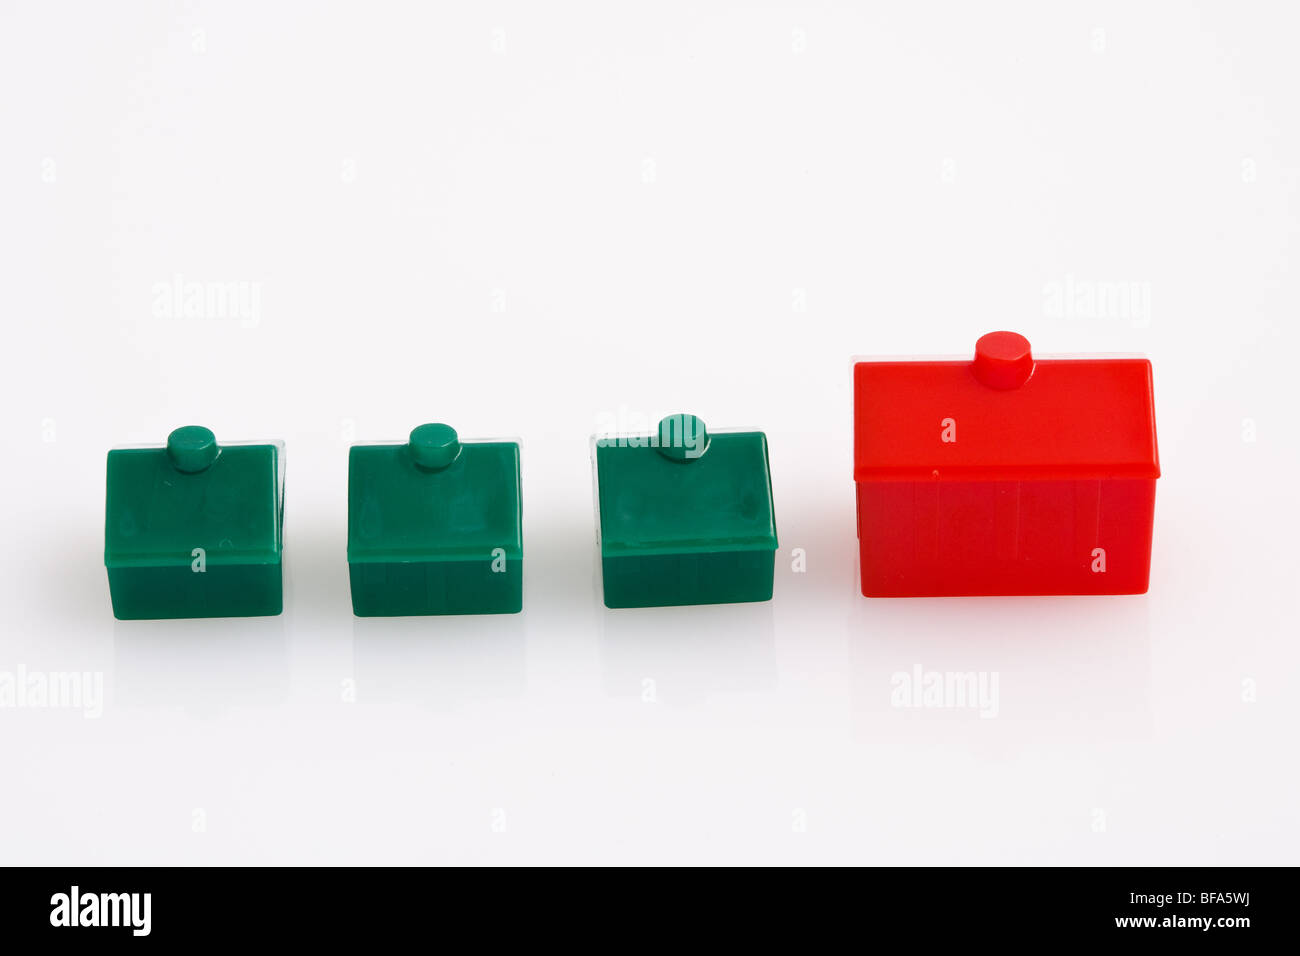 Monopoly Game Pieces - Stock Image